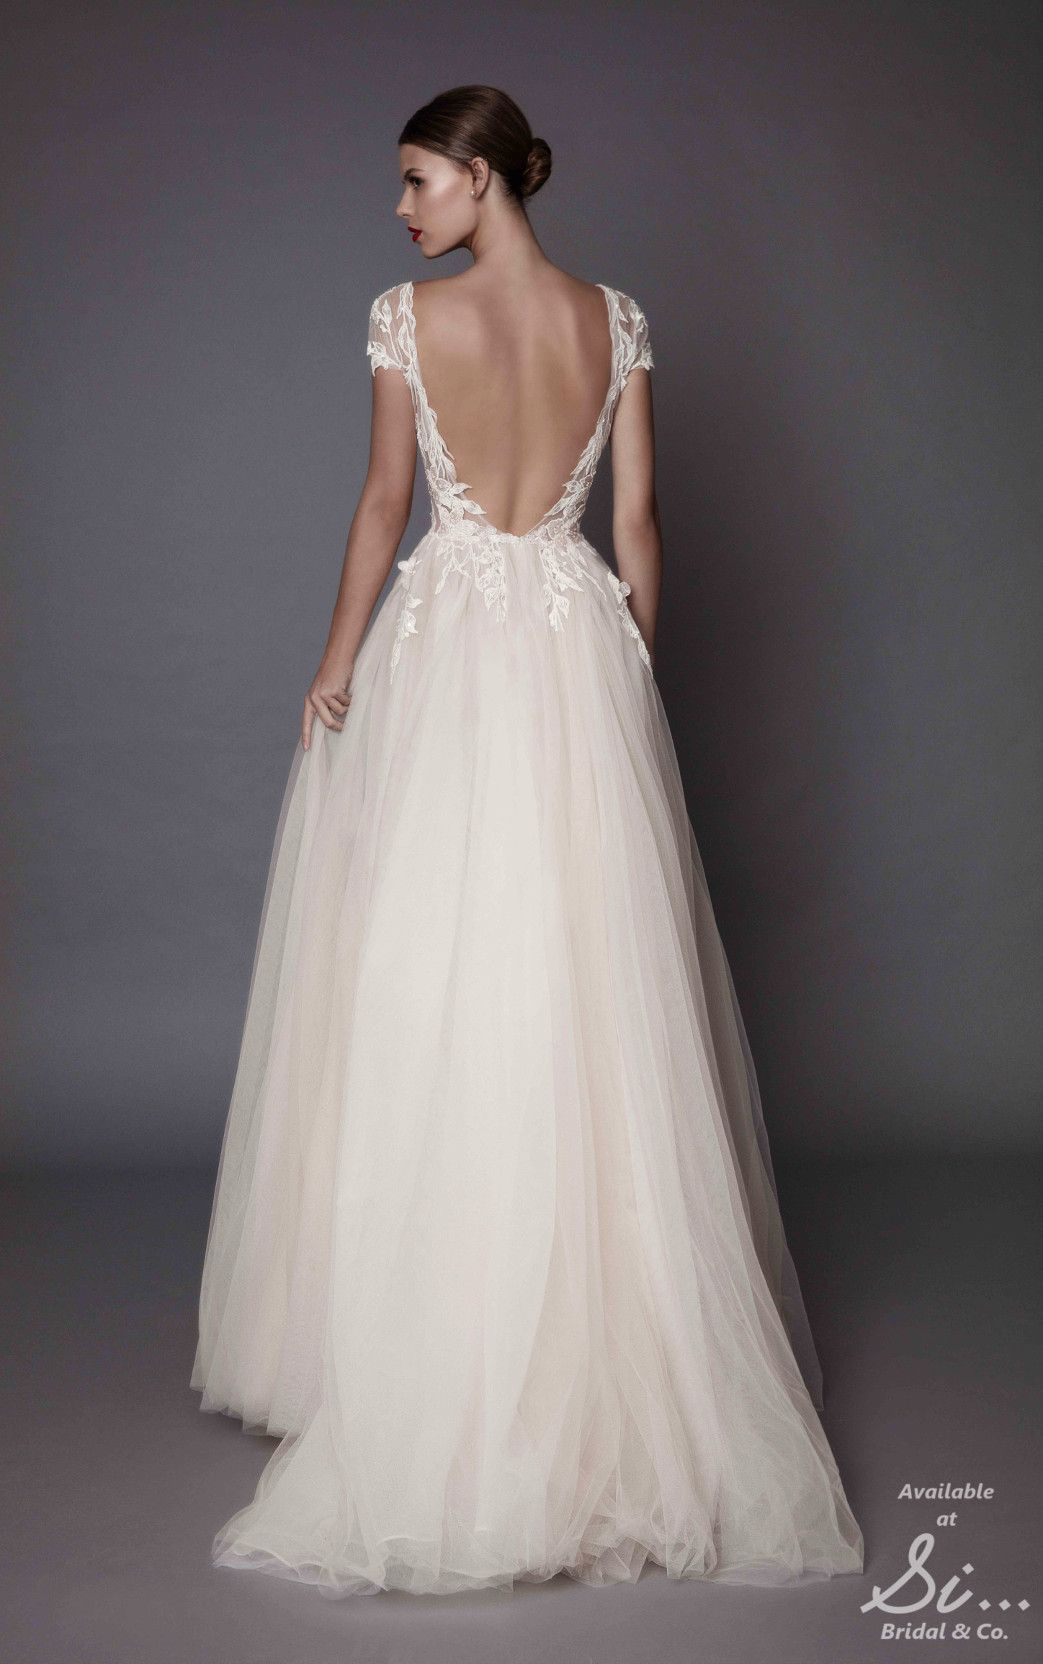 Name brand wedding dresses  Antonia  Muse by BERTA  Brand new luxury diffusion line by the